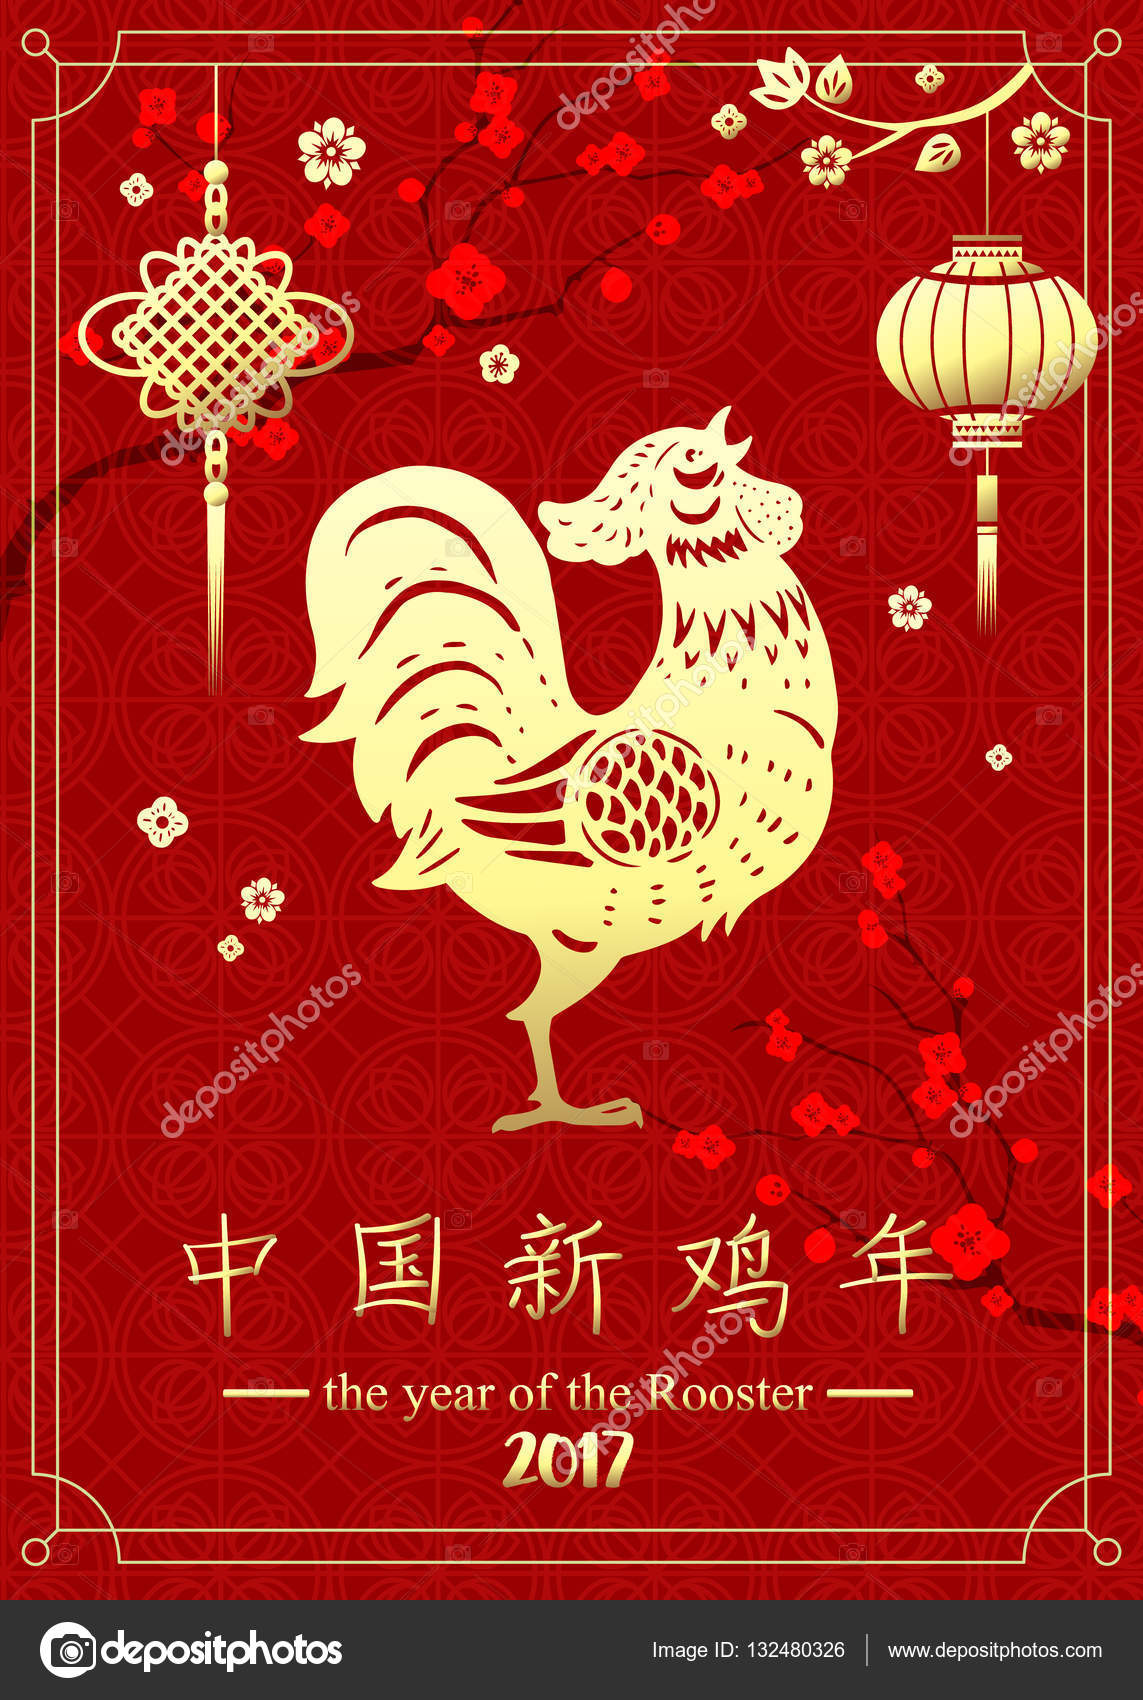 New year 2017 greeting pictures year of rooster happy chinese new year - Gold Rooster With Flowers Tree And Paper Lantern Happy Chinese New Year 2017 Greeting